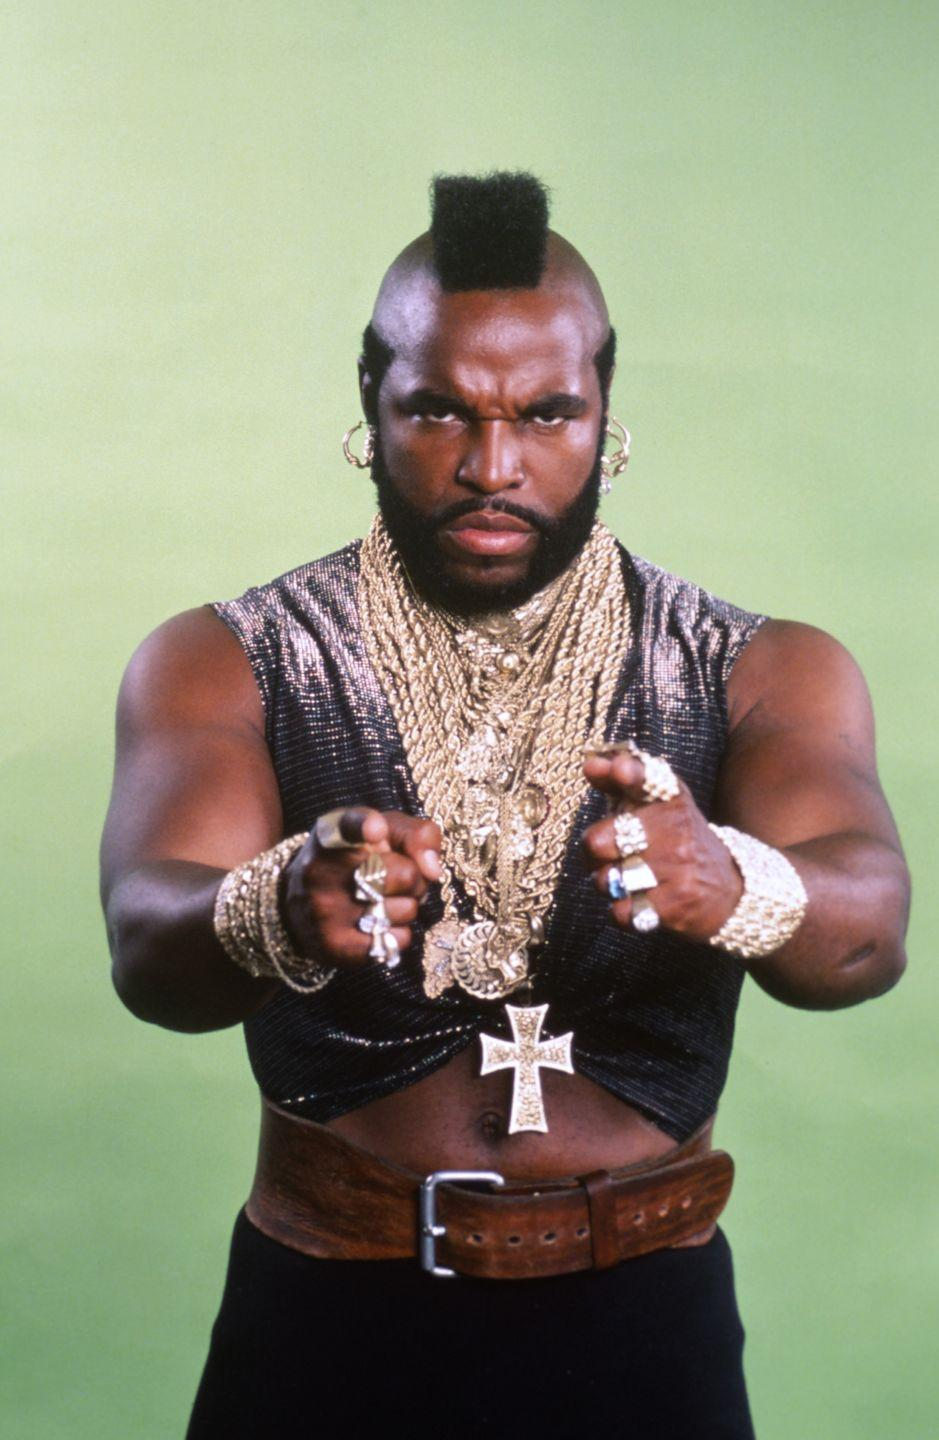 <p>When Mr. T appeared in <em>The A-Team </em>in the early '80s, the wrestler was rarely seen without a myriad of gold chains around his neck. It didn't take long for the look to become his signature.</p>